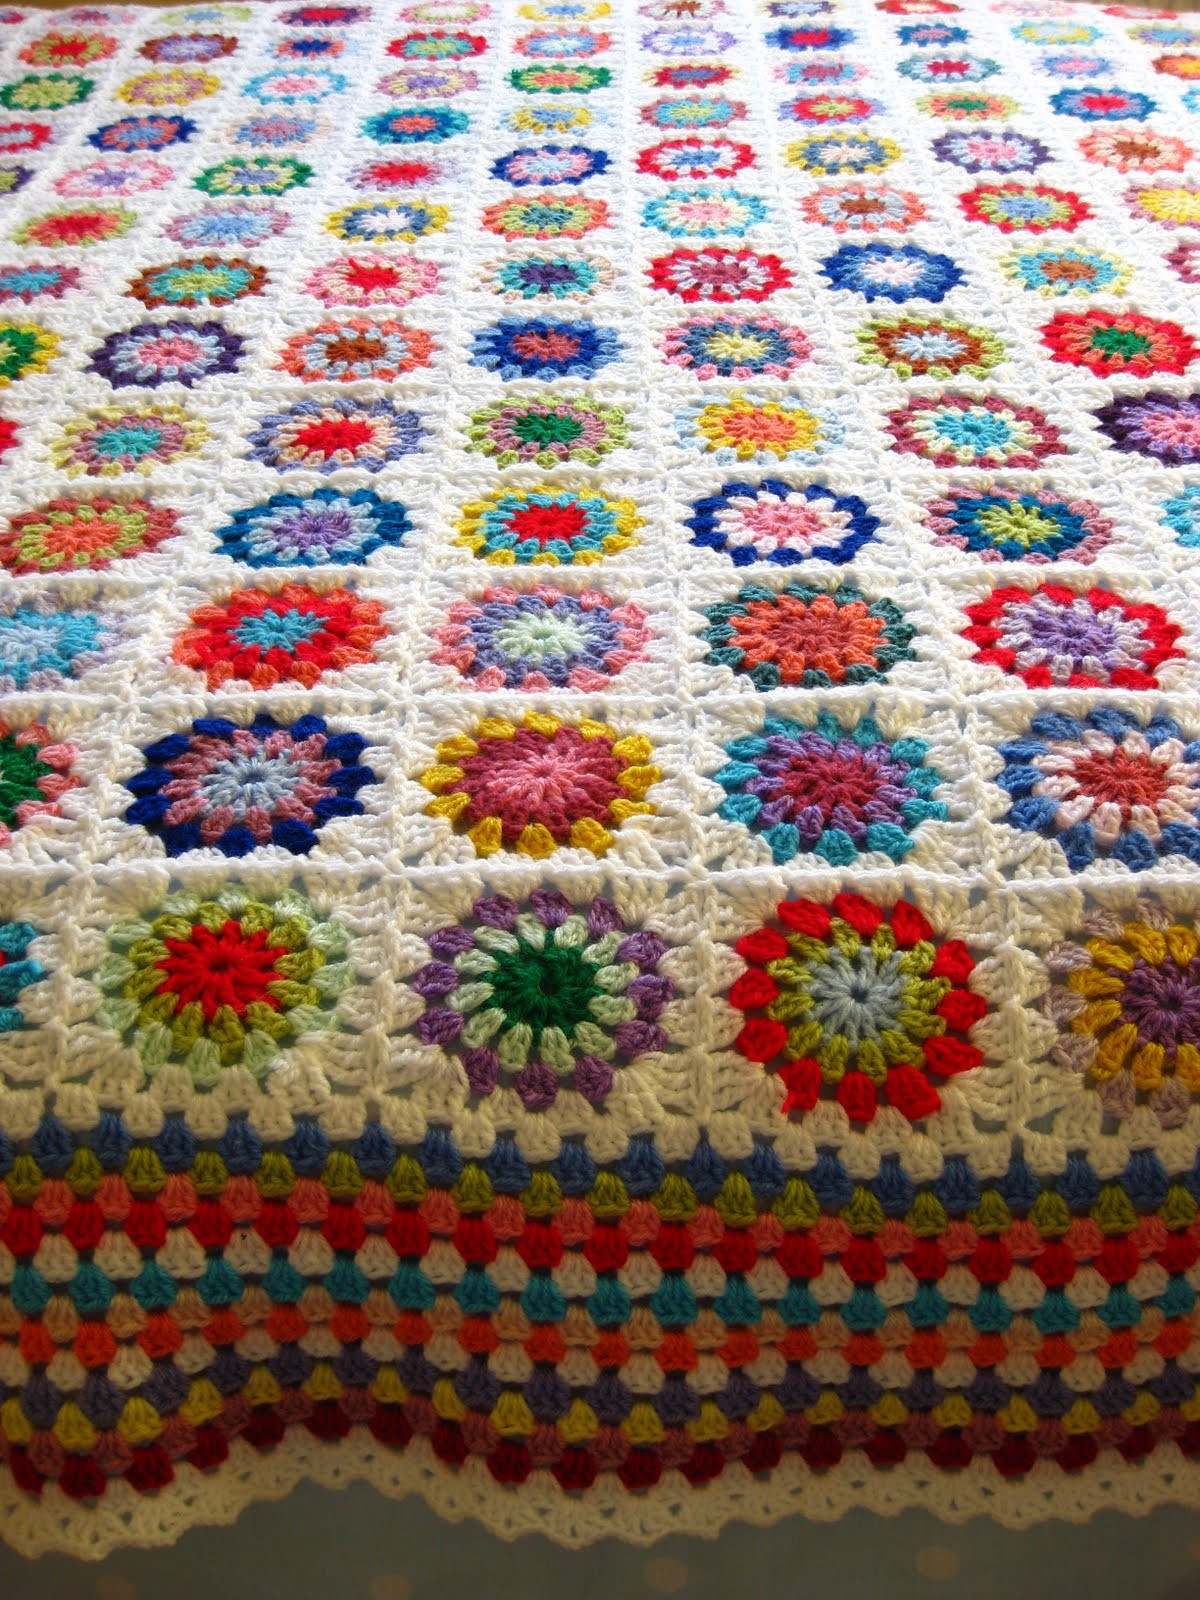 Awesome Bunny Mummy Circle Blanket Ta Dah Crochet Circle Blanket Of Innovative 46 Models Crochet Circle Blanket